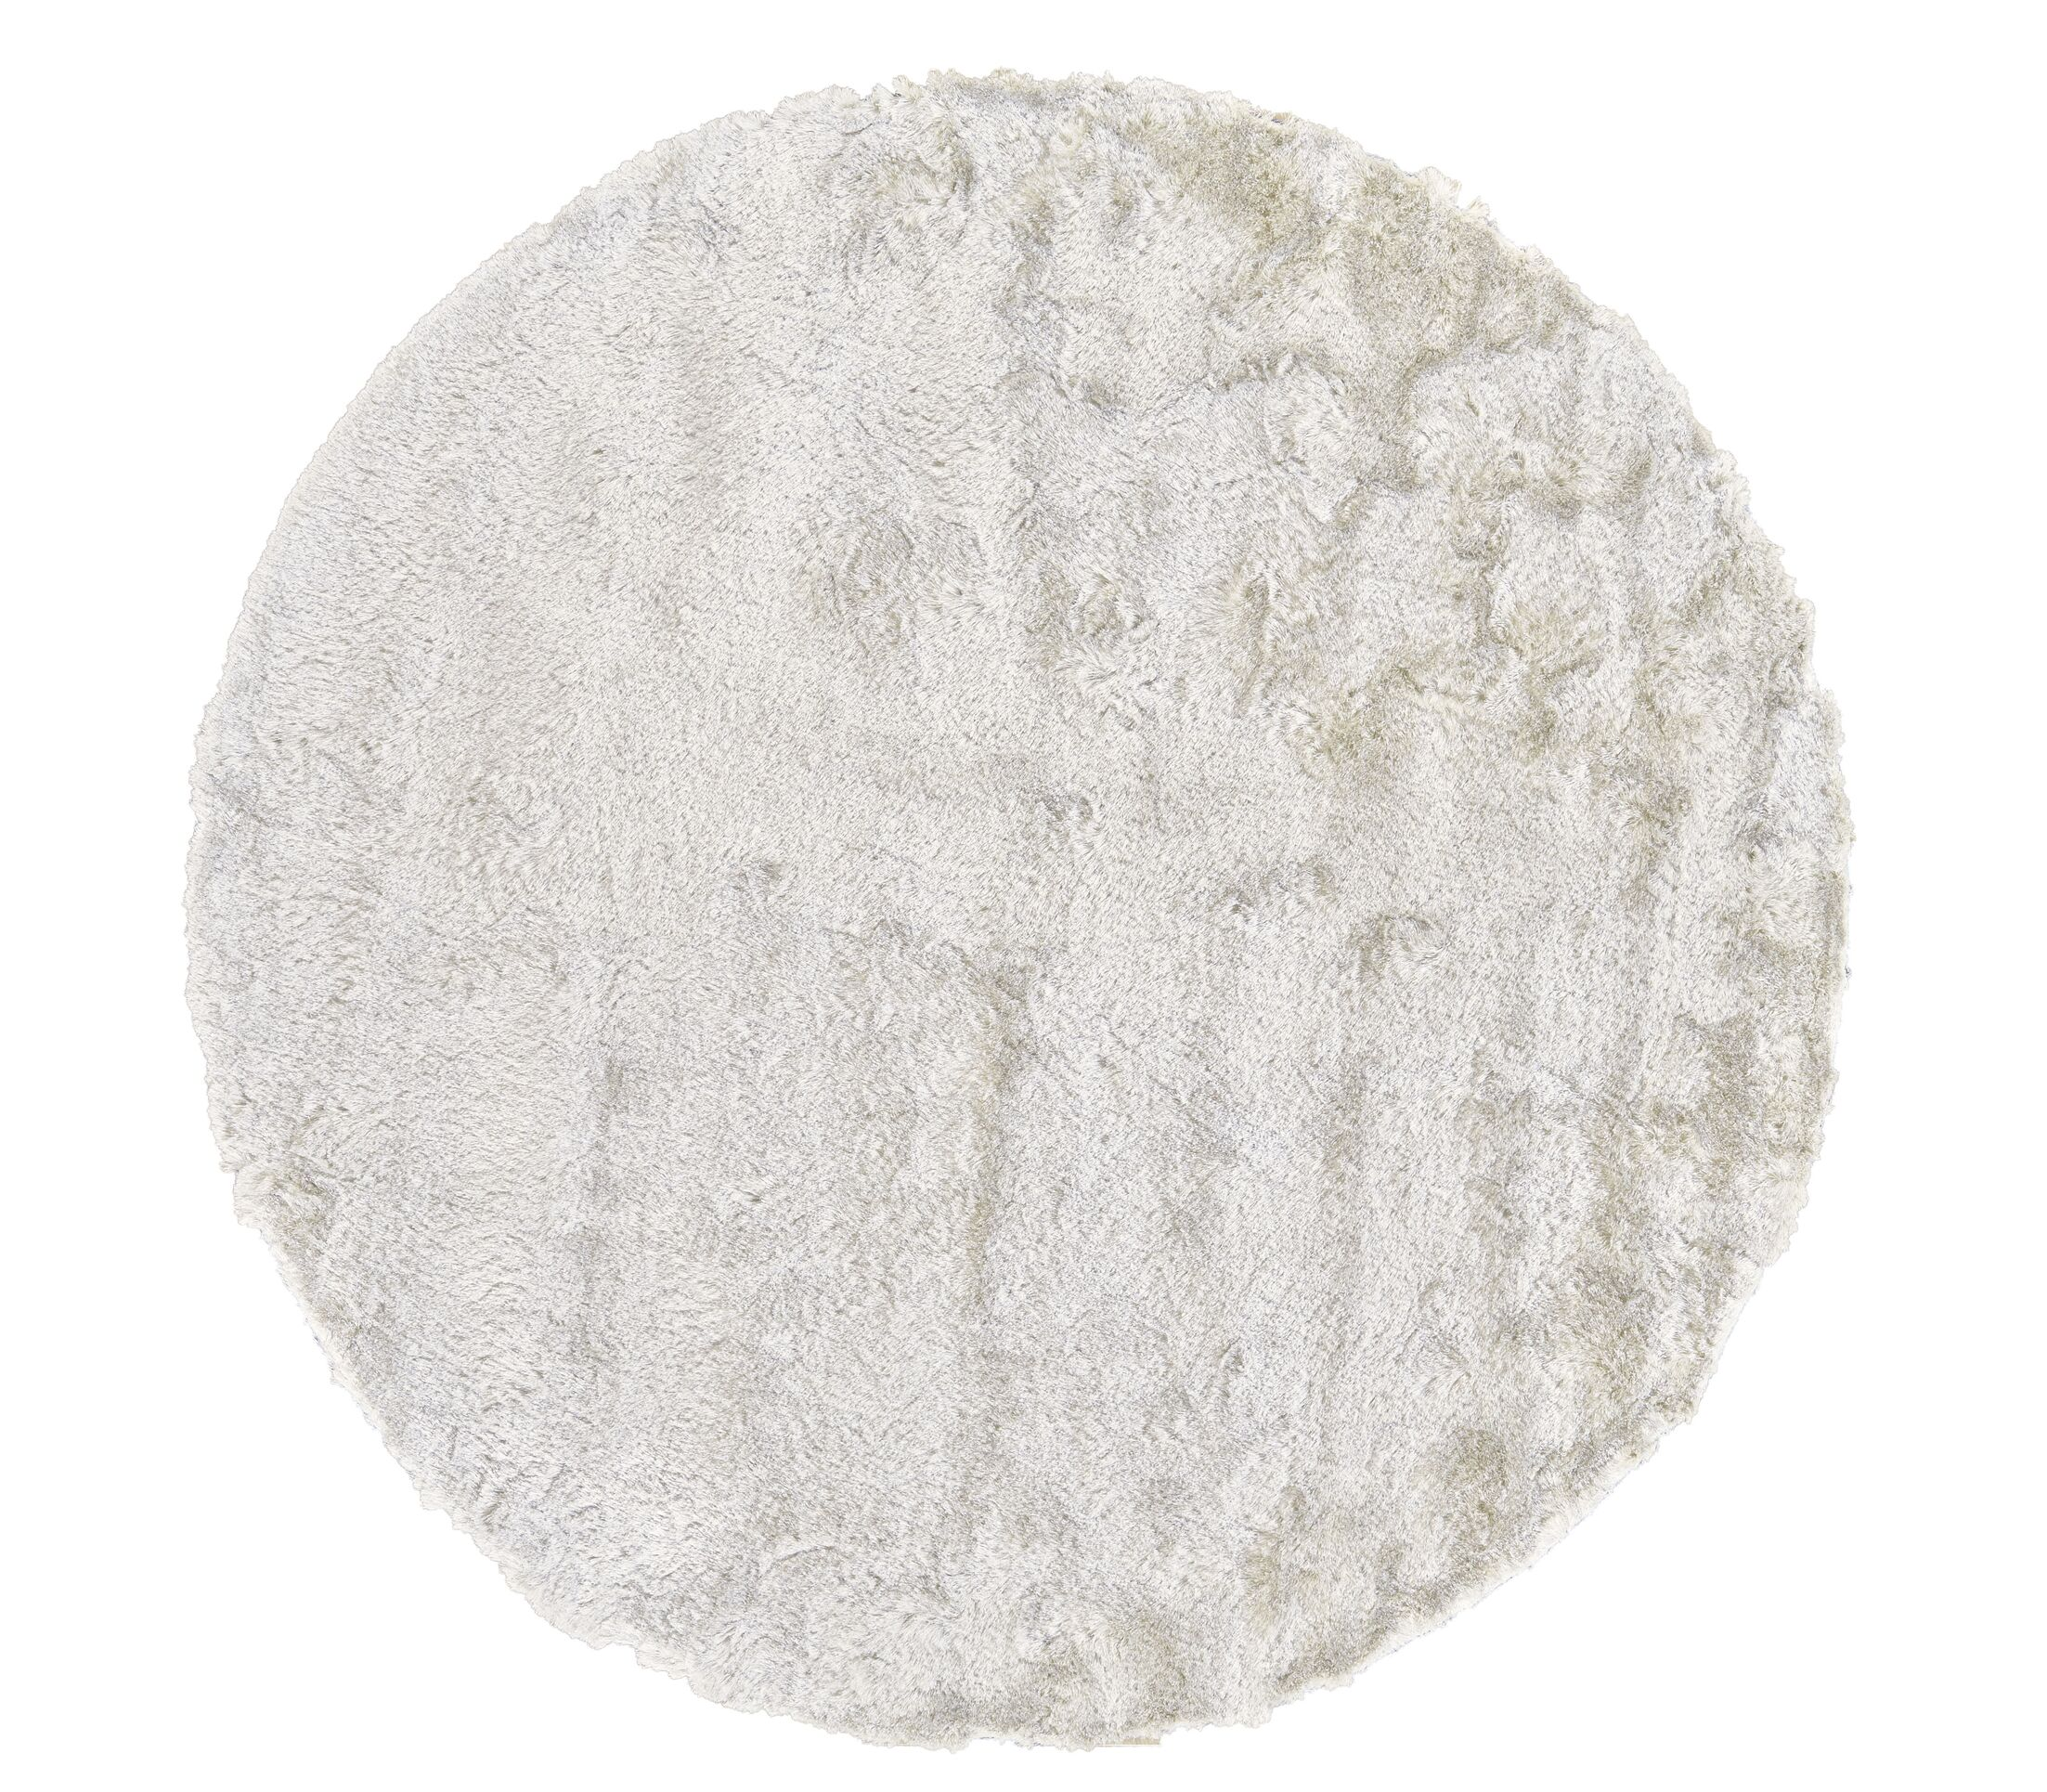 Danae Hand-Tufted White Area Rug Rug Size: Round 8'